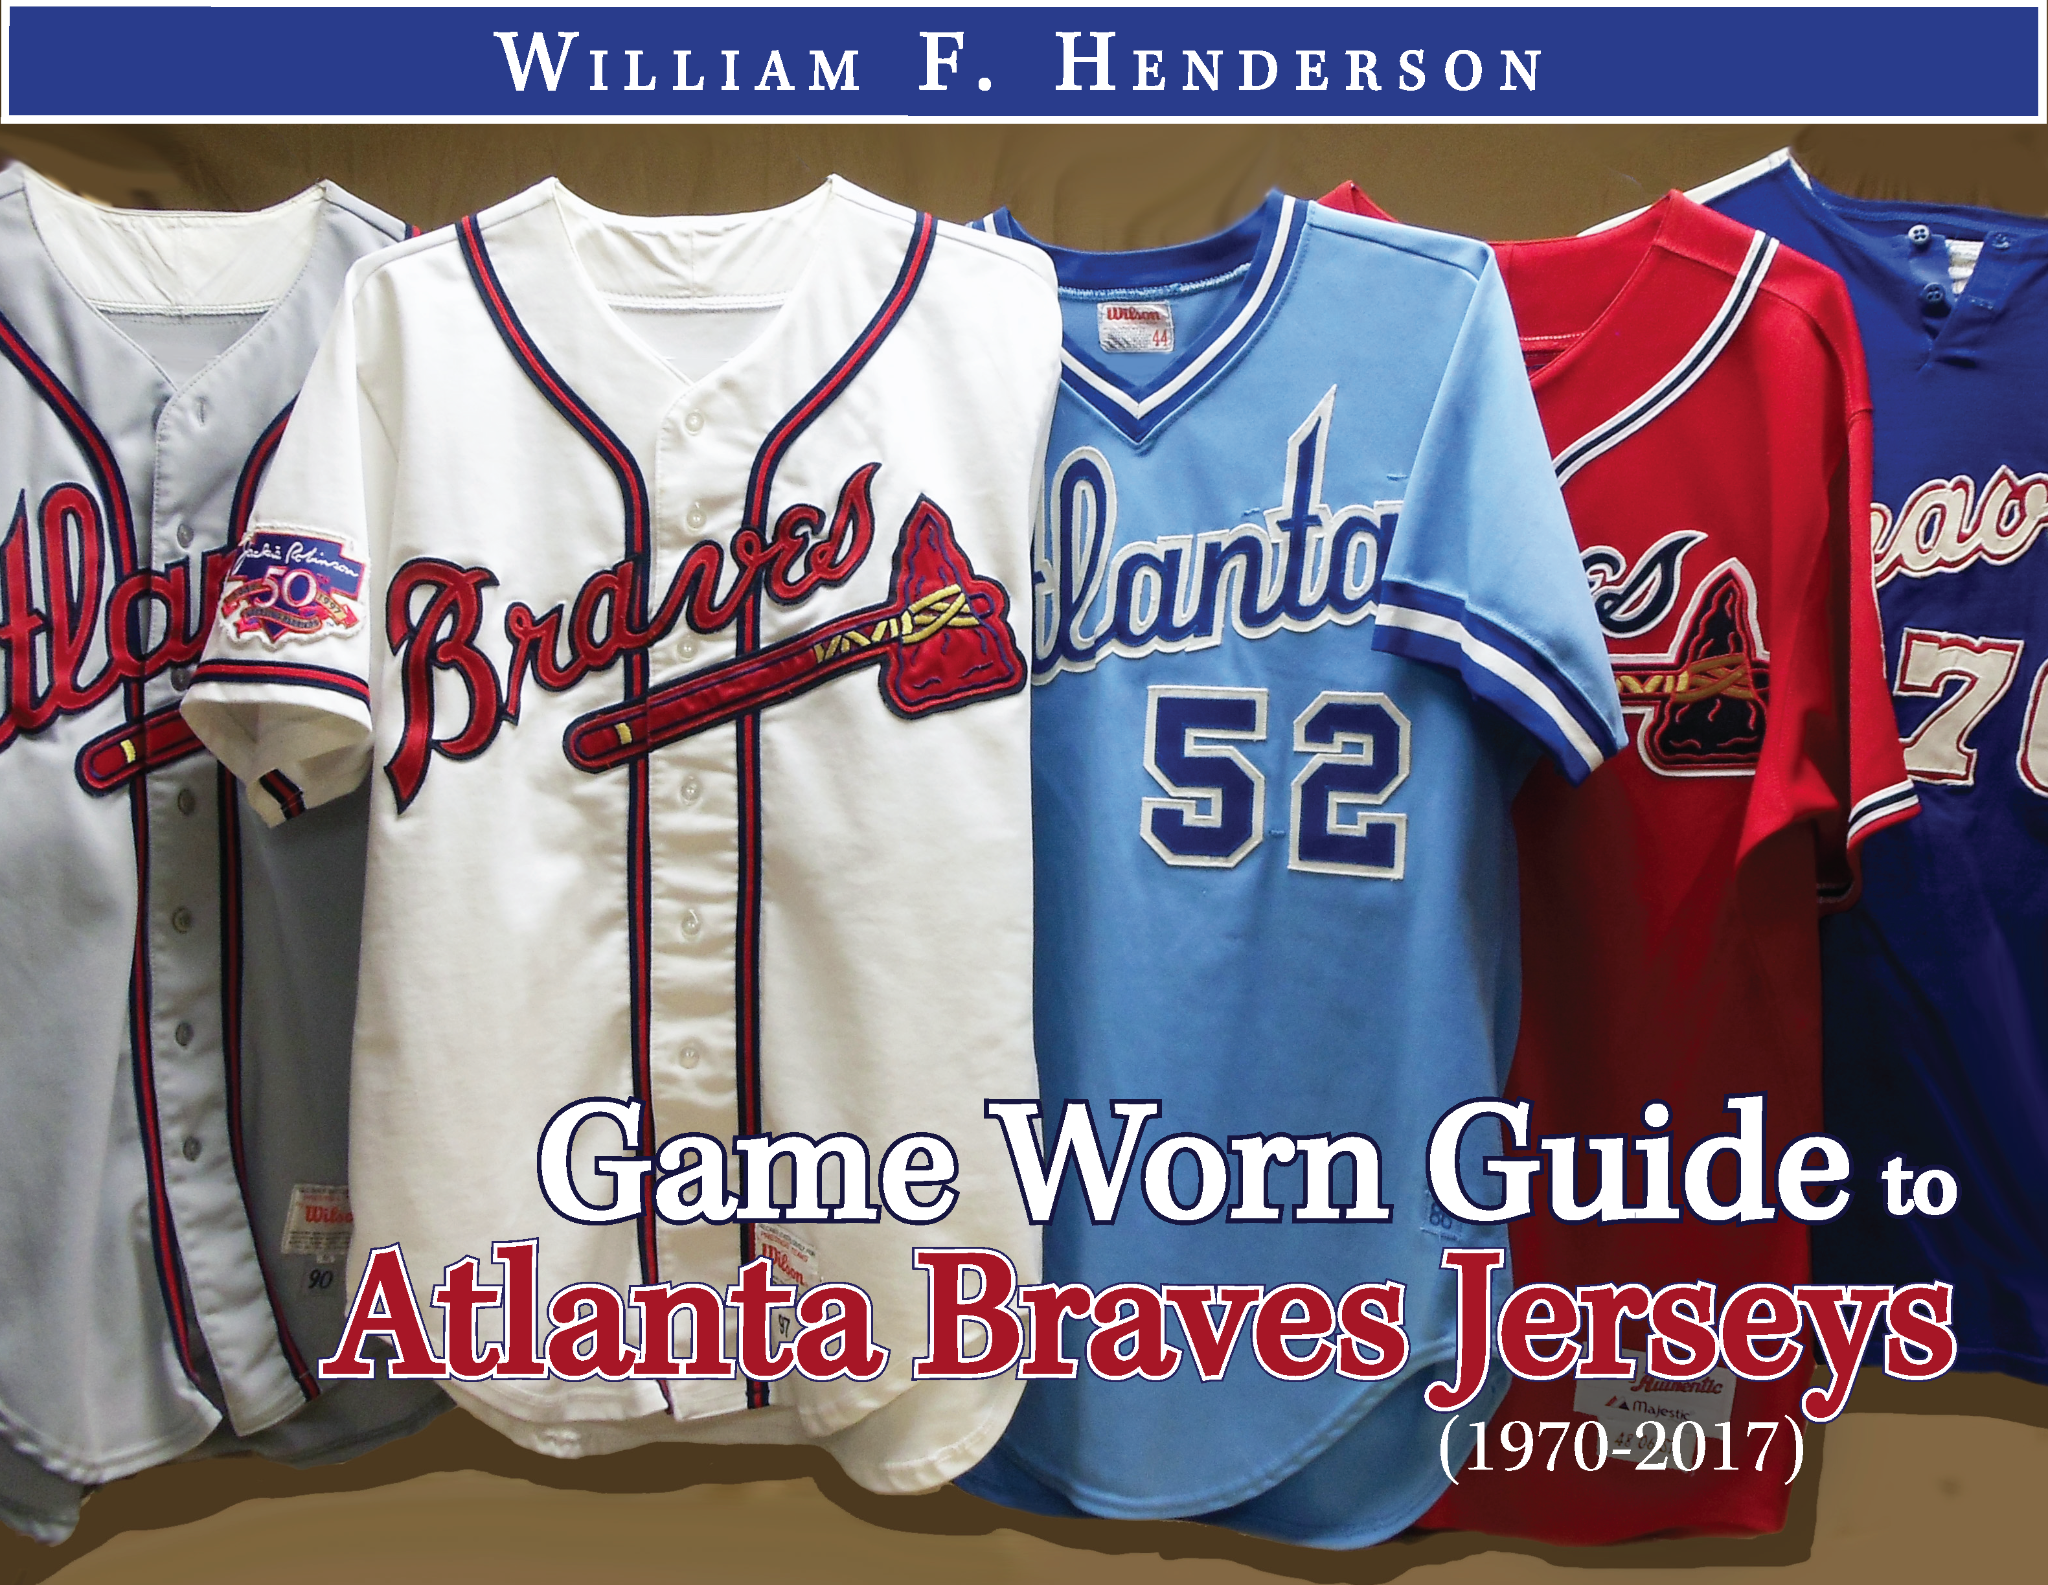 Game Worn Guide to Atlanta Braves Jerseys (1970-2017)